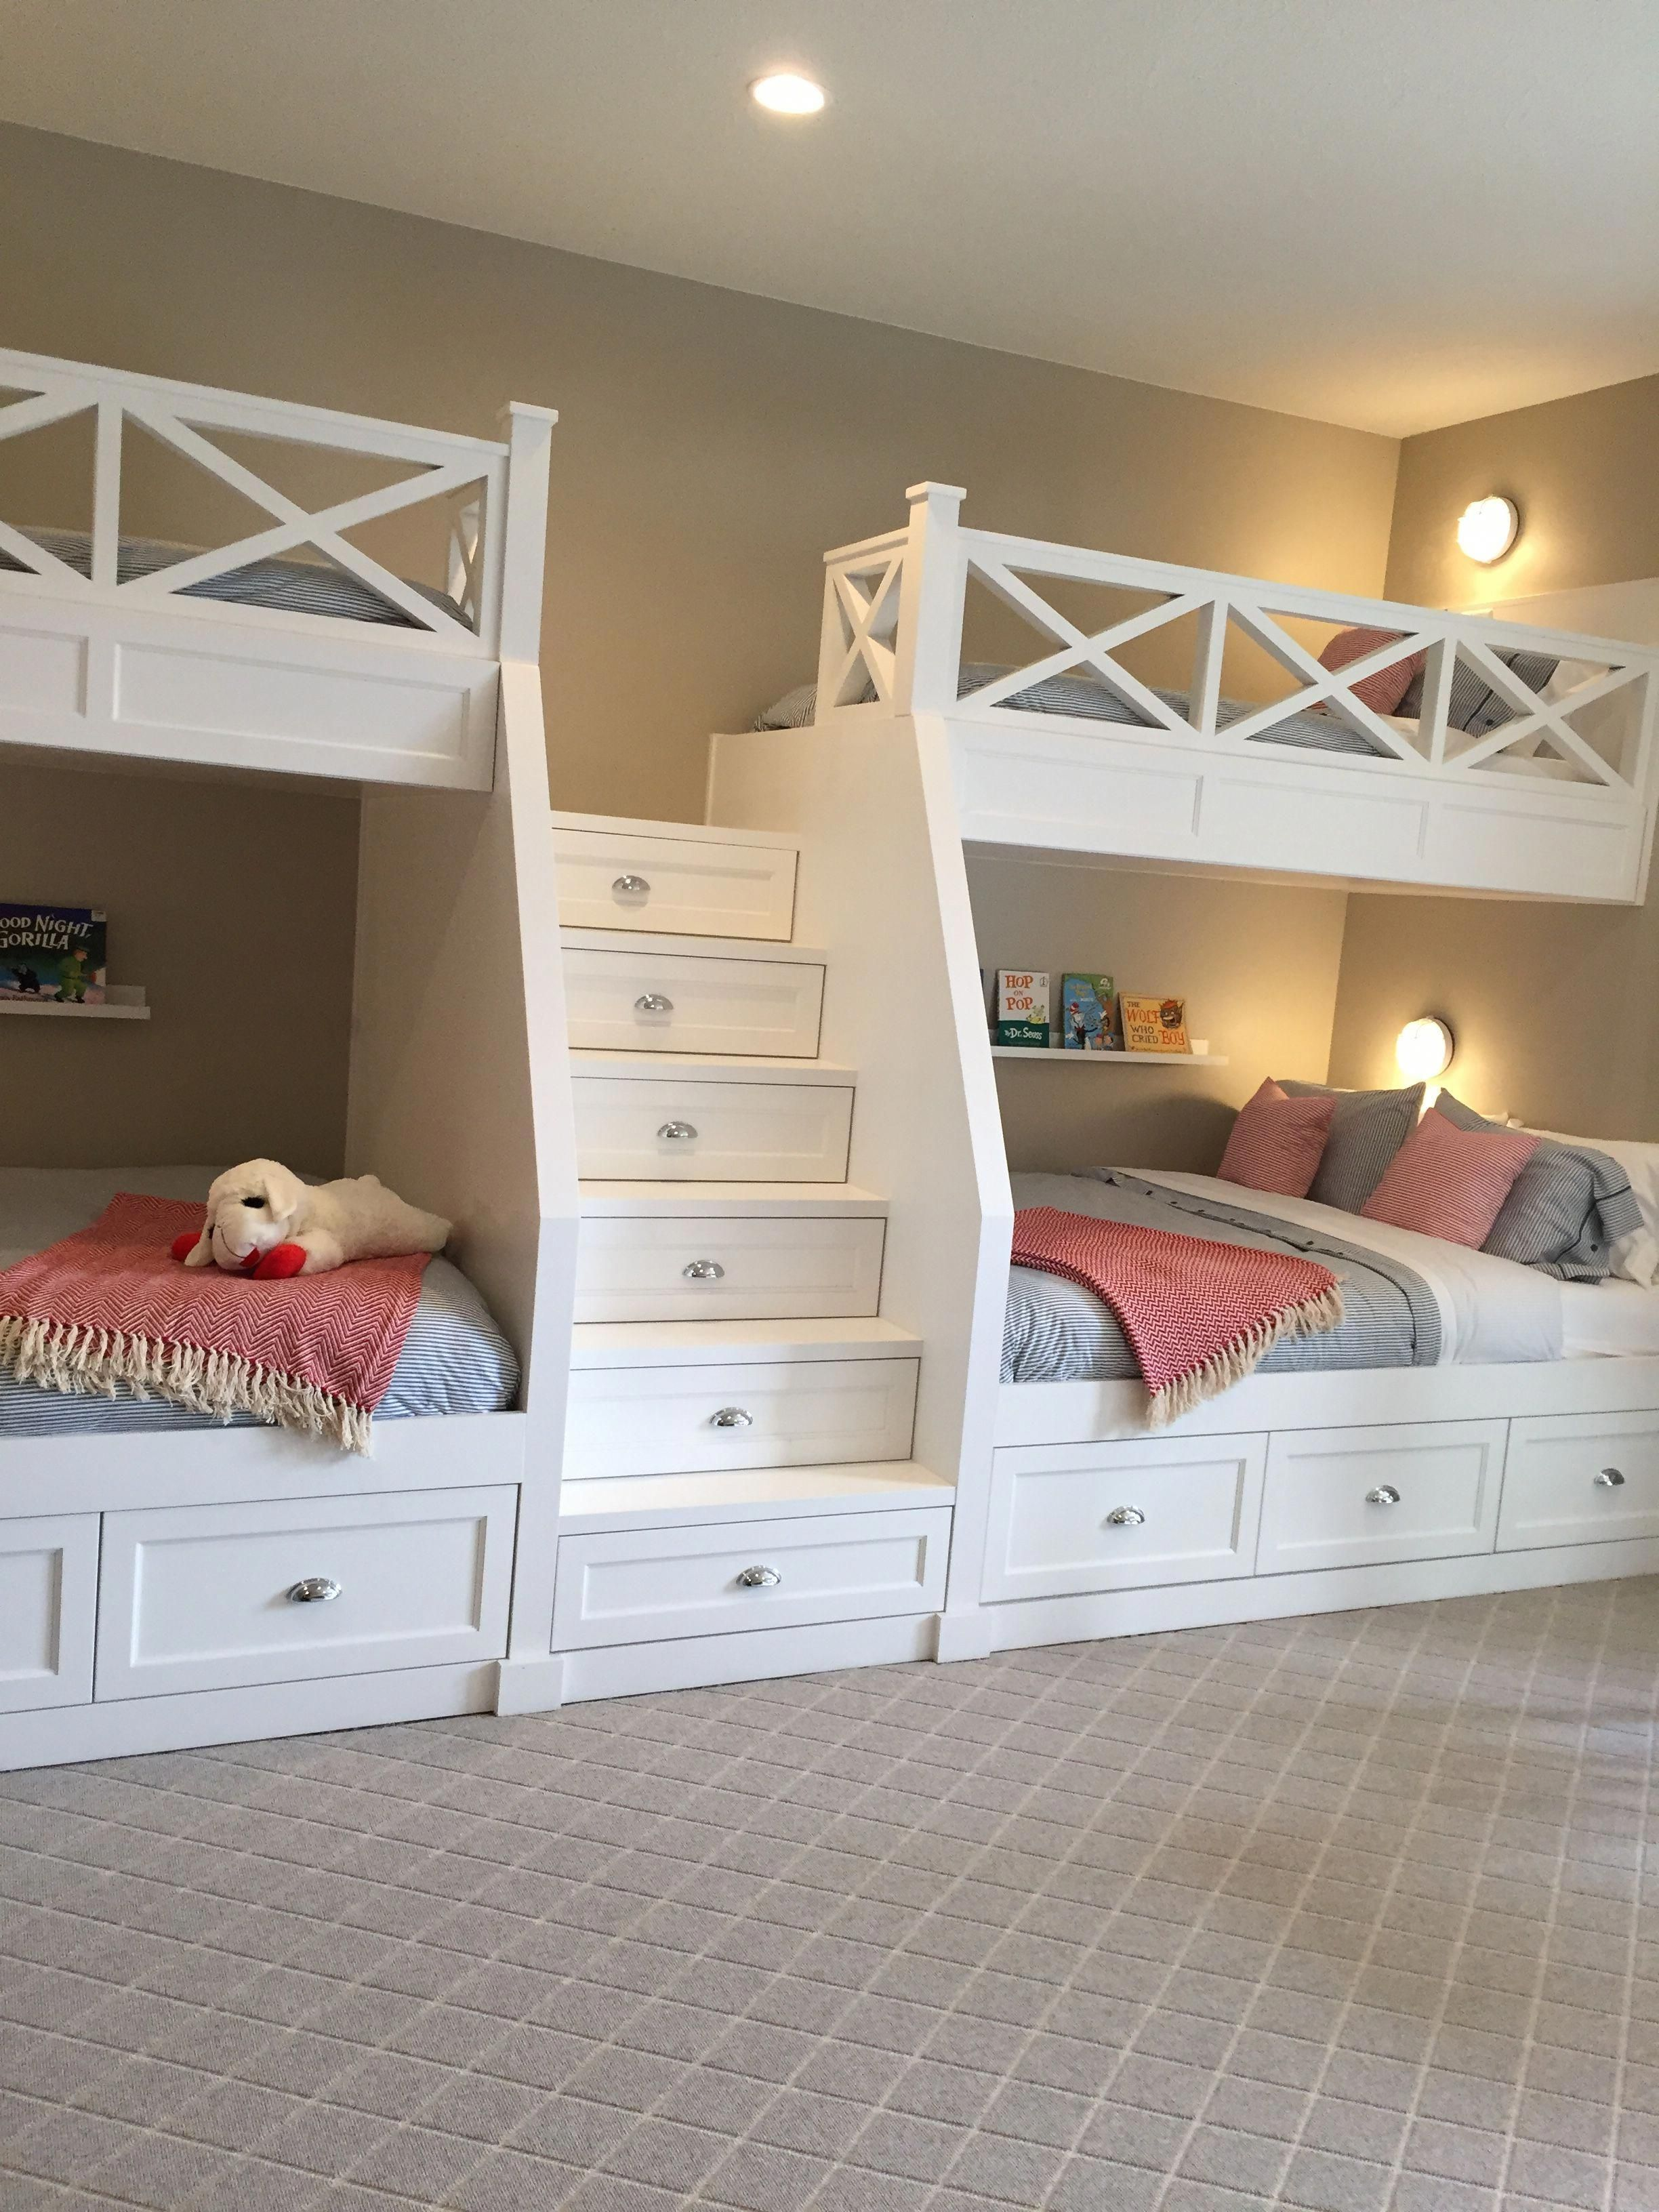 Outstanding Modern Bunk Beds For Girls Room Information Is Offered On Our Internet Site Read More And You Won Girl Bedroom Decor Bunk Bed Designs Bed Design